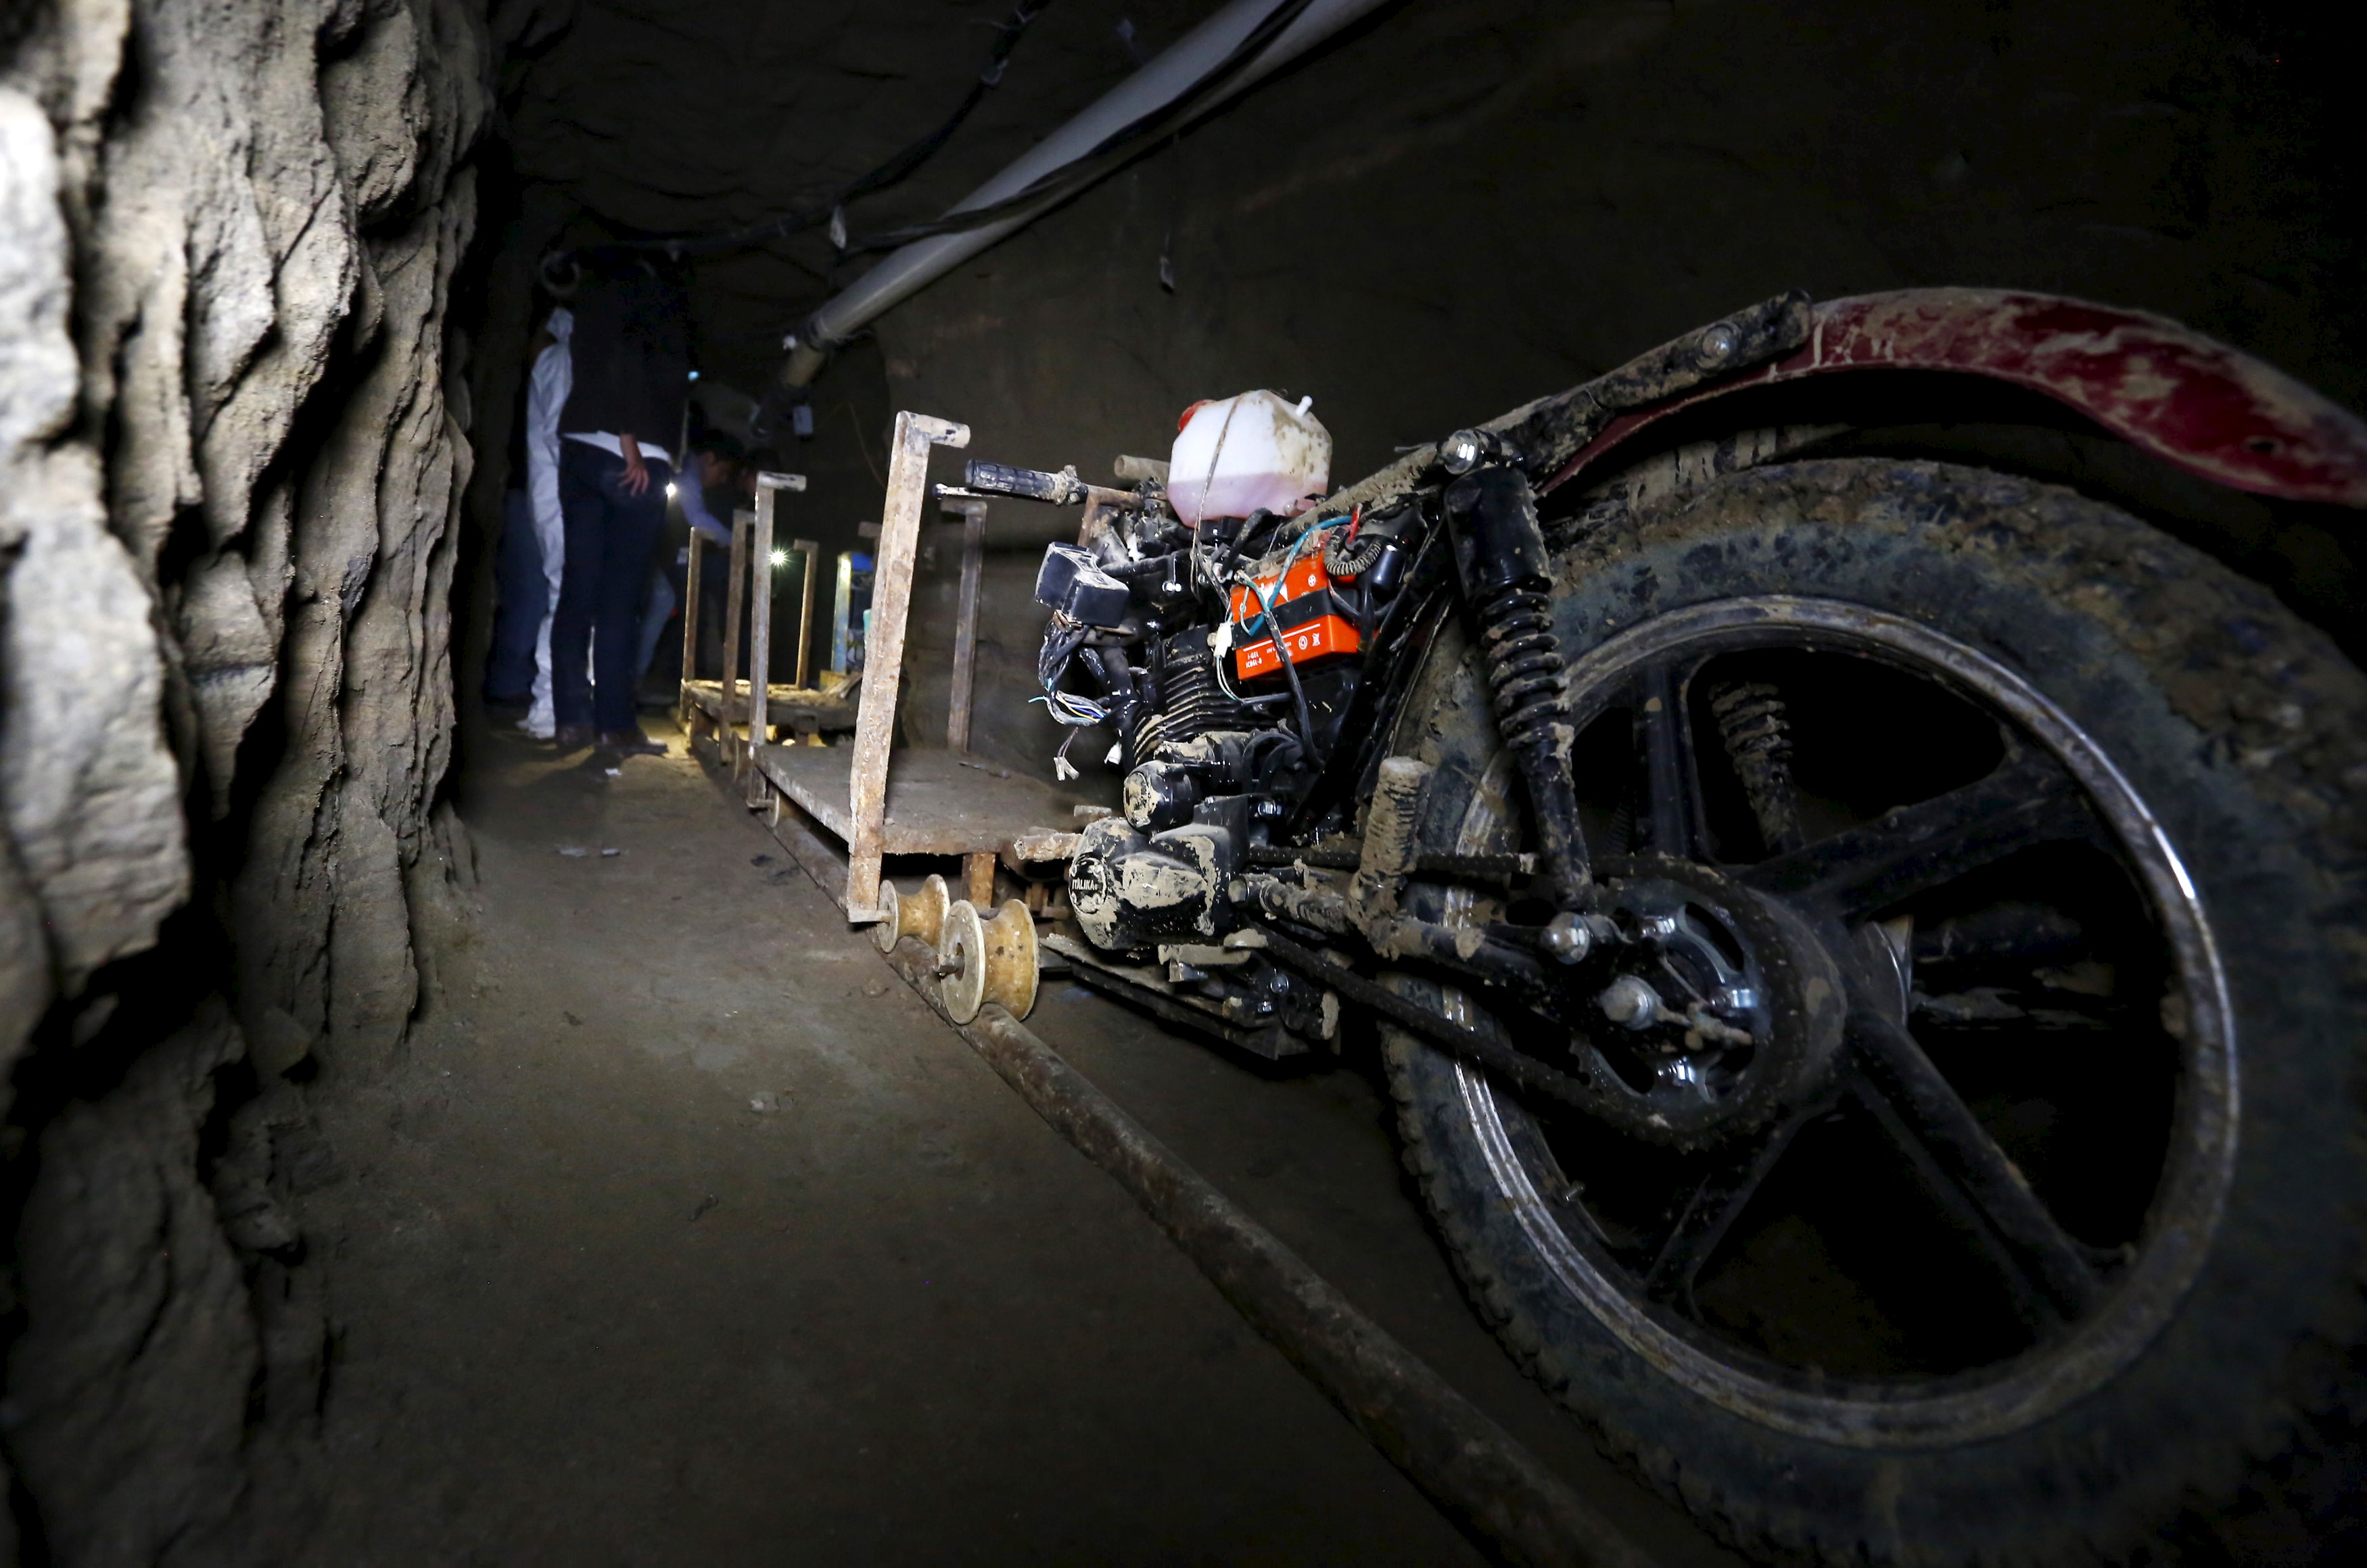 A motorcycle modified to run on rails is seen inside a tunnel connected to the Altiplano Federal Penitentiary and used by drug lord Joaquin 'El Chapo' Guzman to escape, in Almoloya de Juarez, on the outskirts of Mexico City, July 15, 2015. U.S. law enforcement officials met with agents of the Mexican attorney general's office this week to share information related to the escape from prison of Guzman and coordinate efforts to apprehend him, a Mexican government official said on Wednesday.  REUTERS/Edgard Garrido - RTX1KGHX